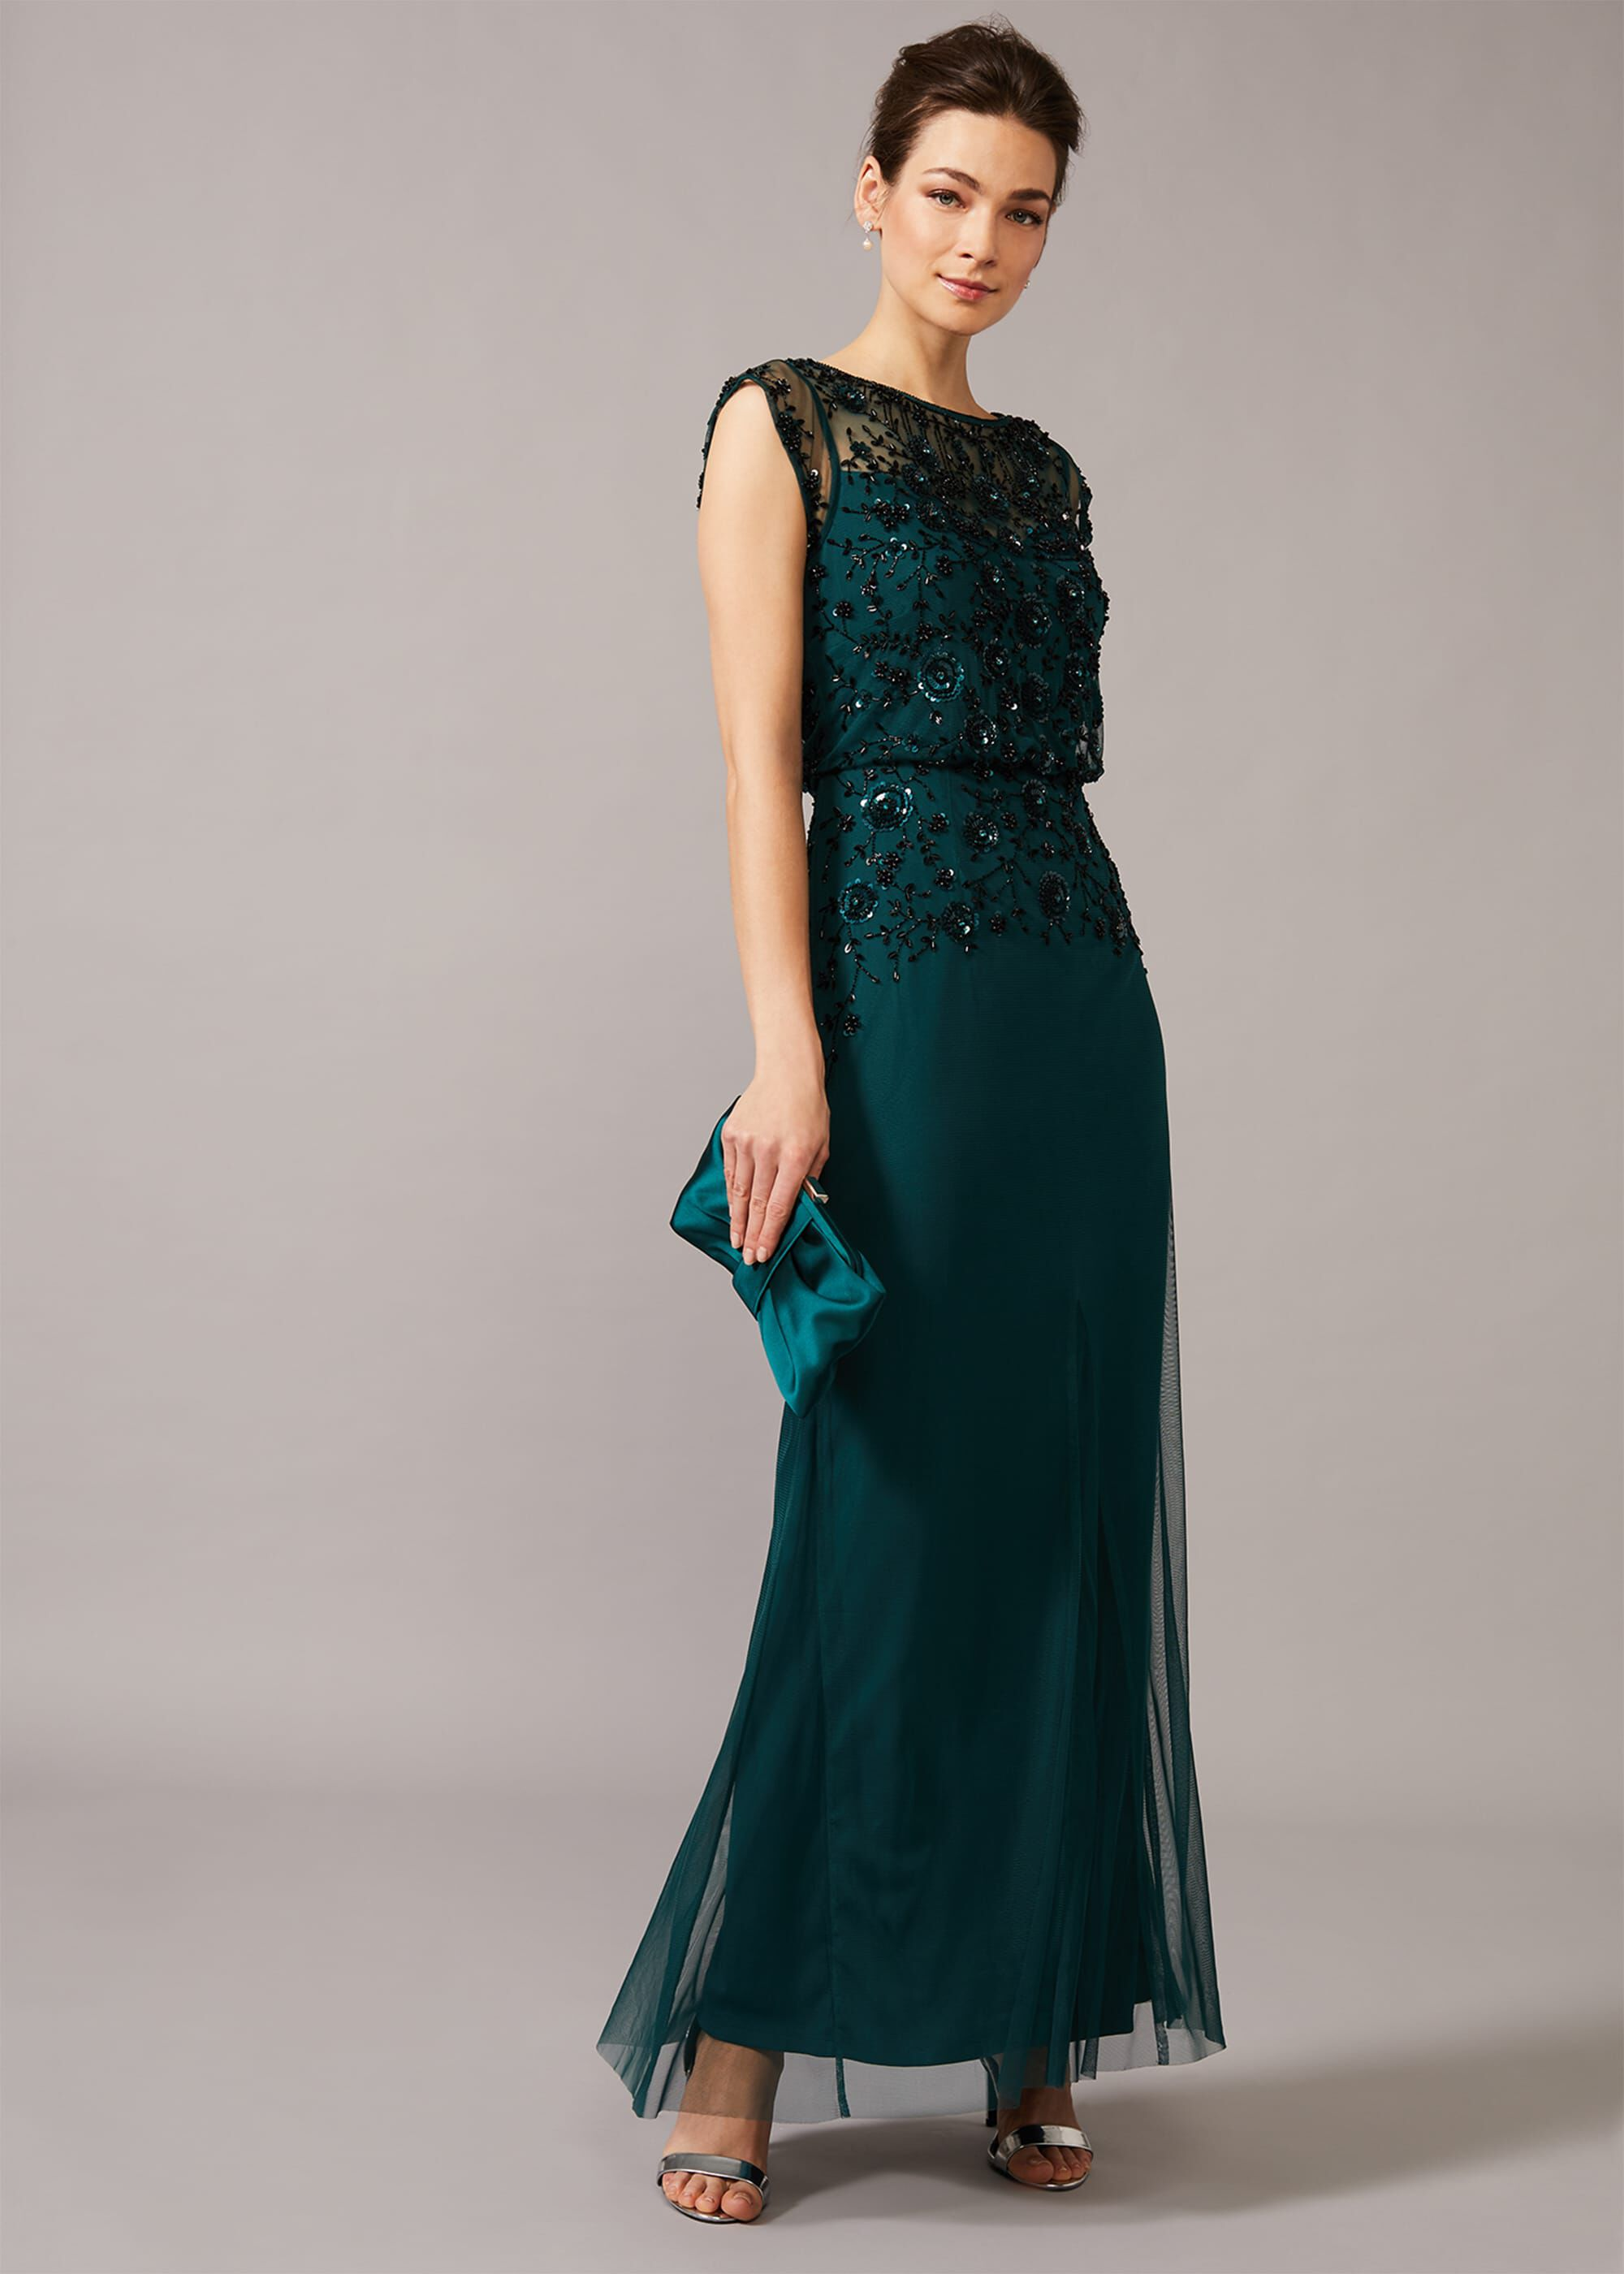 Phase Eight Elan Sequinned Dress, Green, Maxi, Occasion Dress